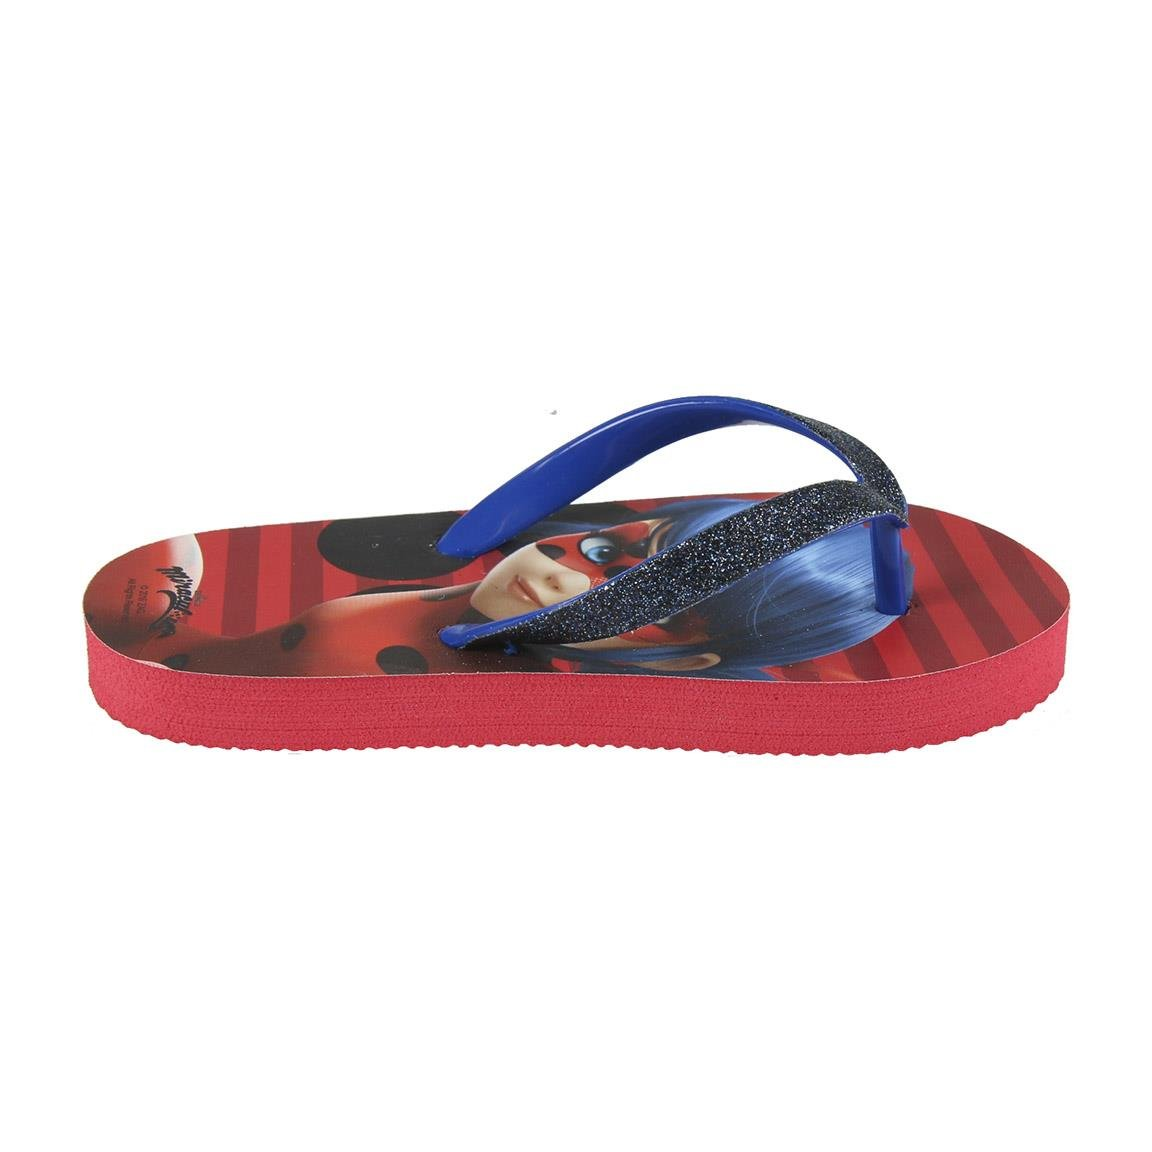 Tongs Lady Bug 0844 taille 31